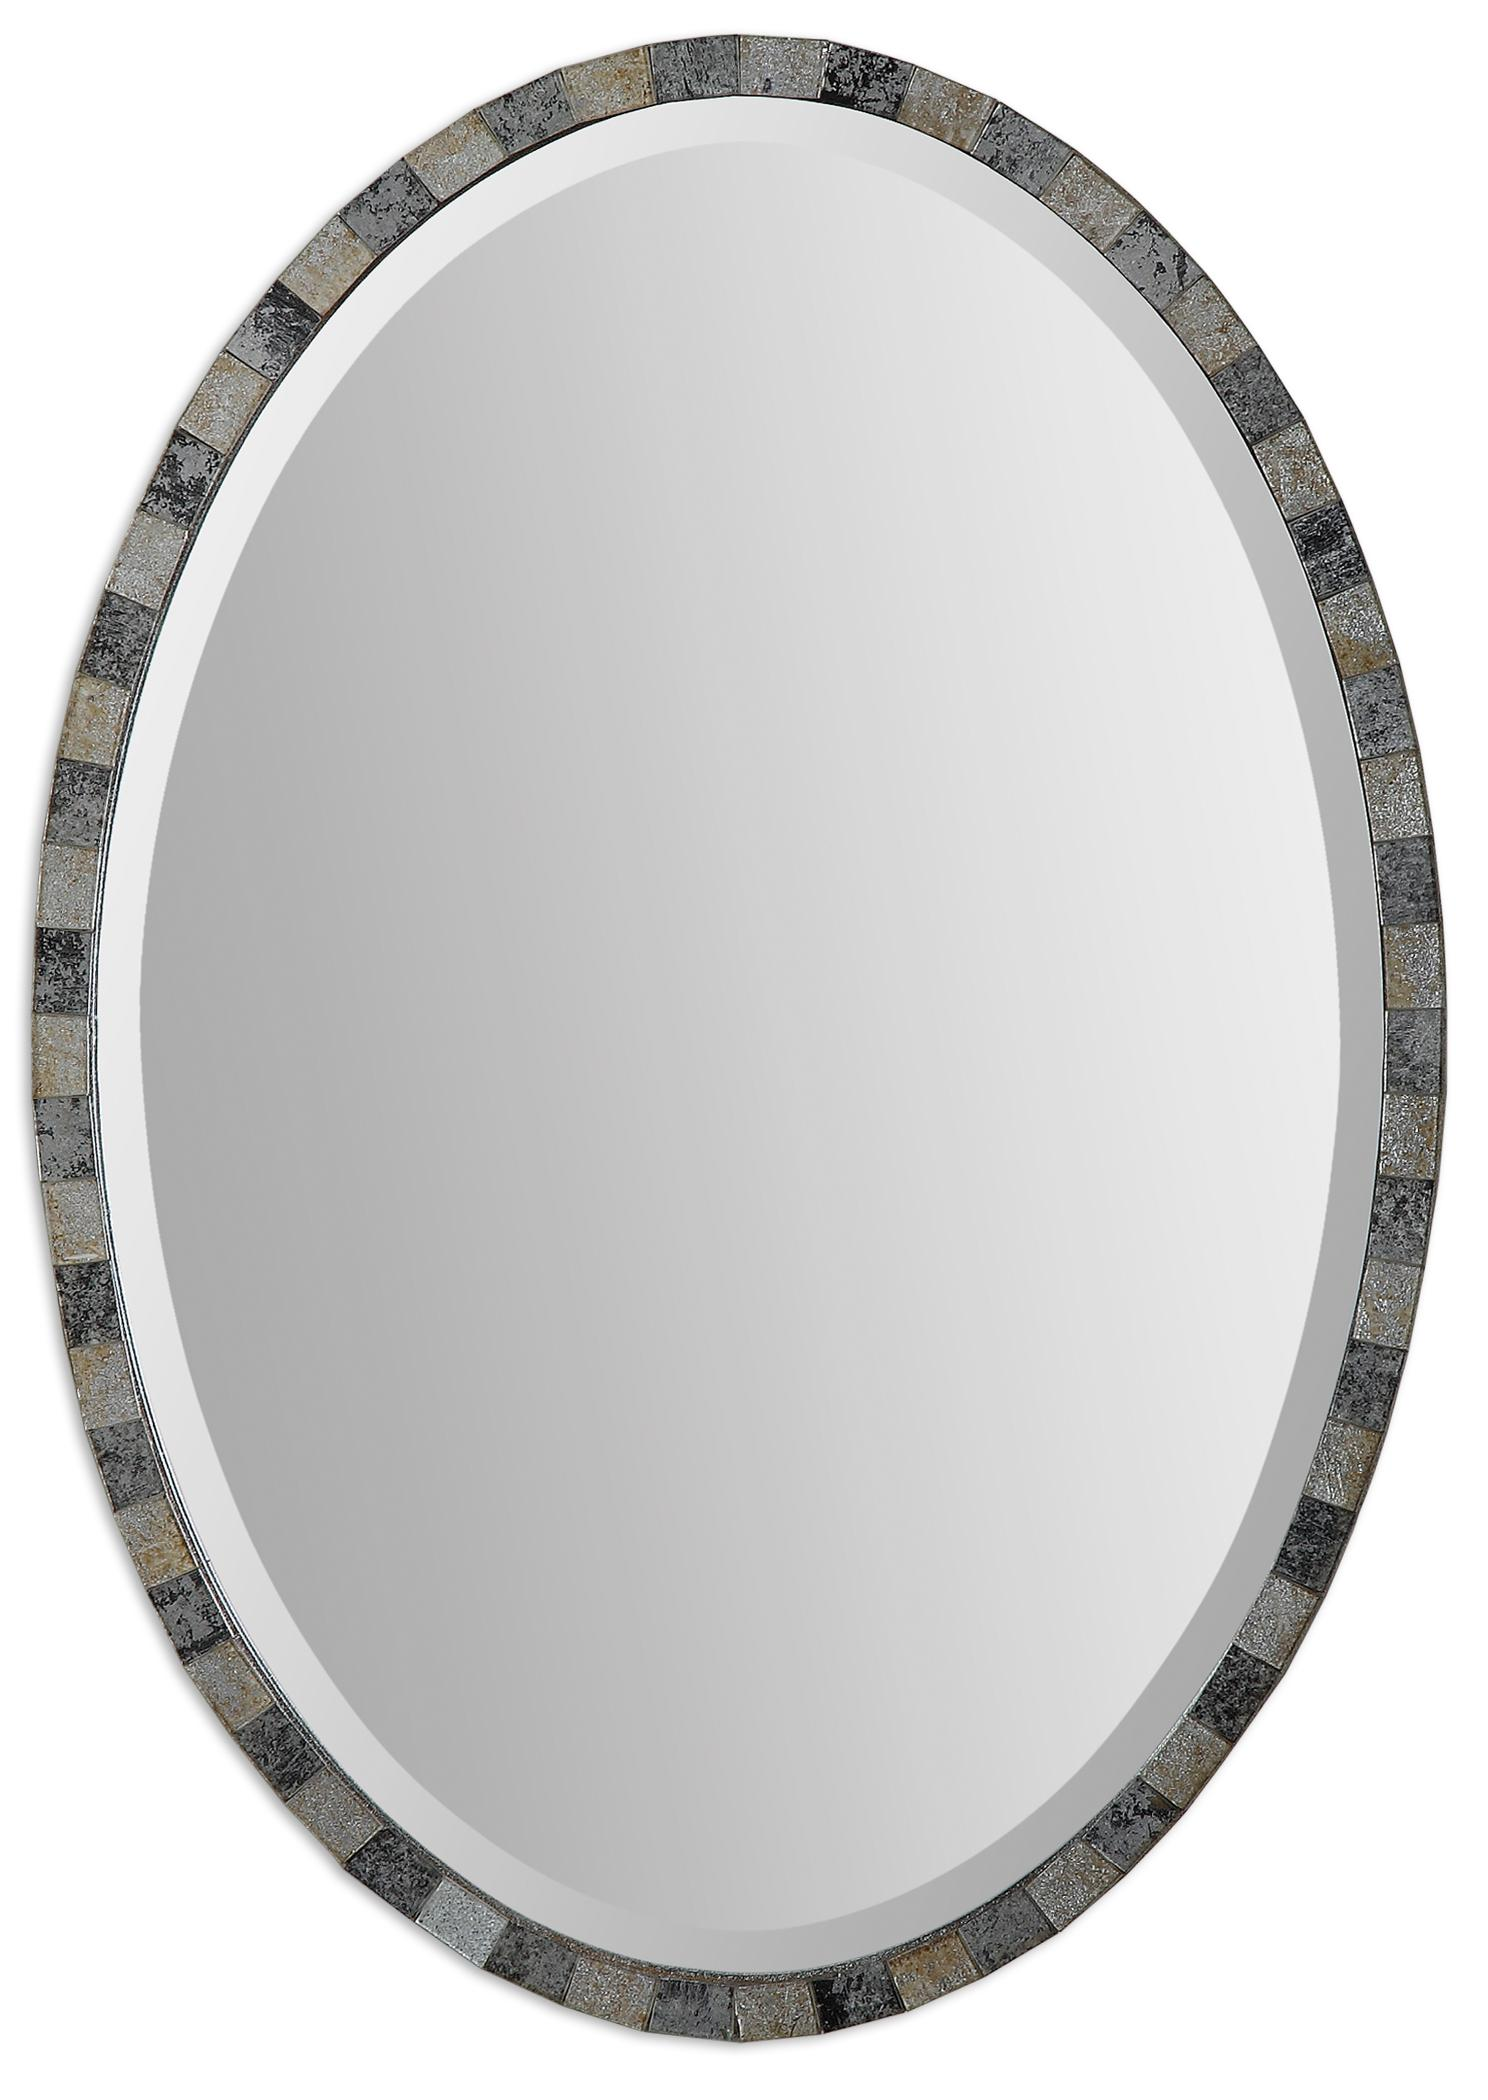 Uttermost Mirrors Paredes Oval Mosaic Mirror - Item Number: 12859